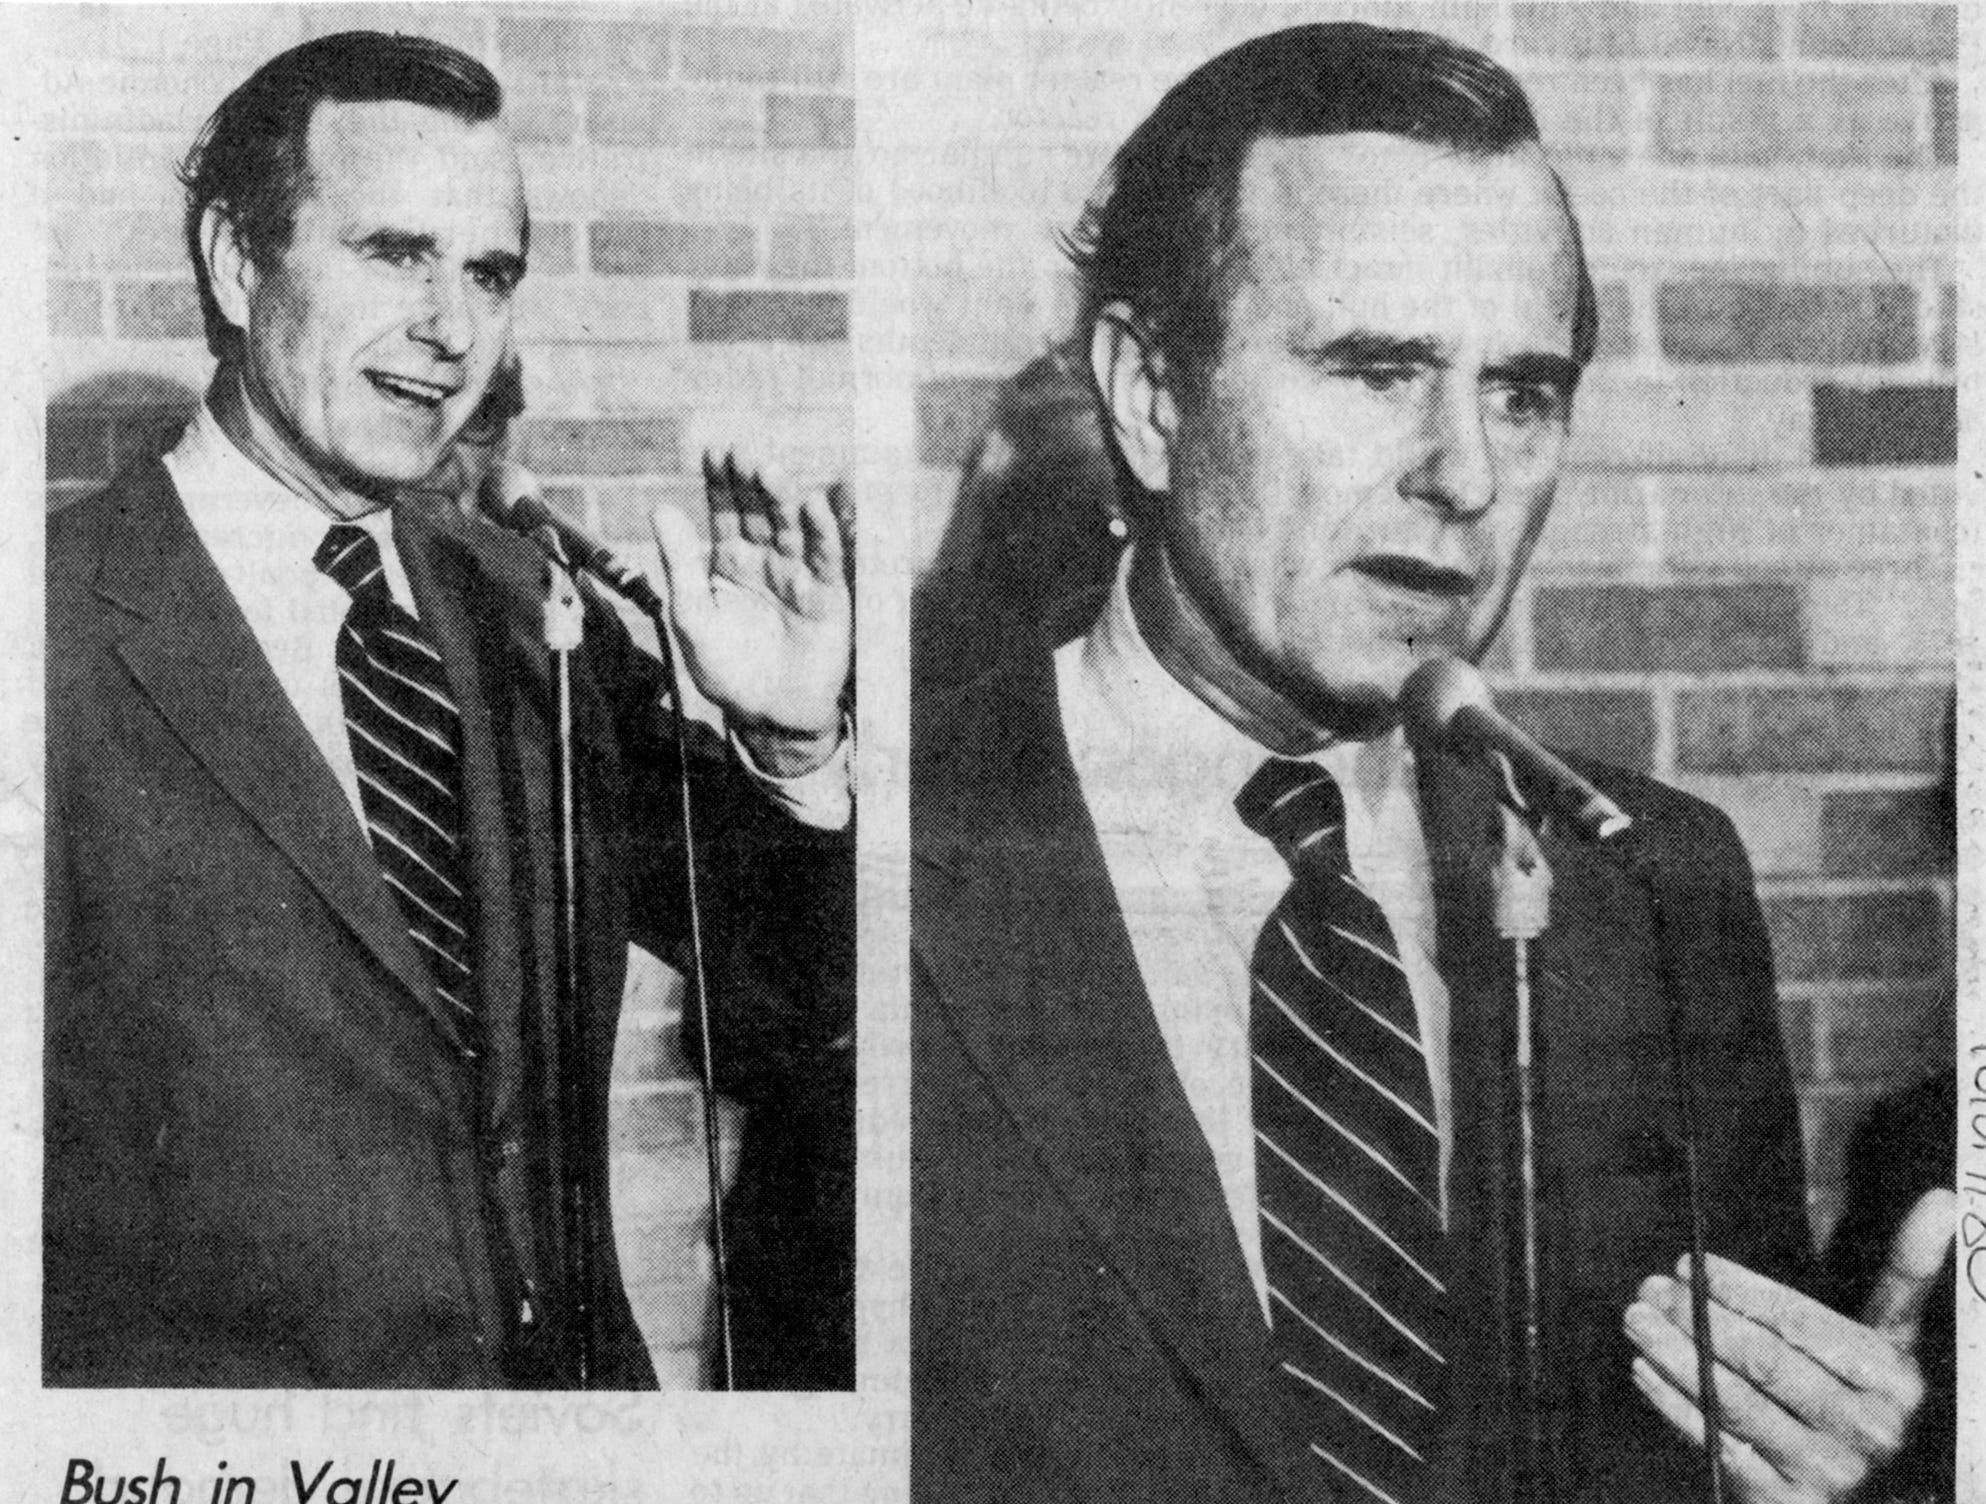 Oct. 24, 1980. Candidate in Appleton. Inflation still issue: Bush. Article about Republican vice-presidential candidate George H. W. Bush by Frank Church in The Post-Crescent.